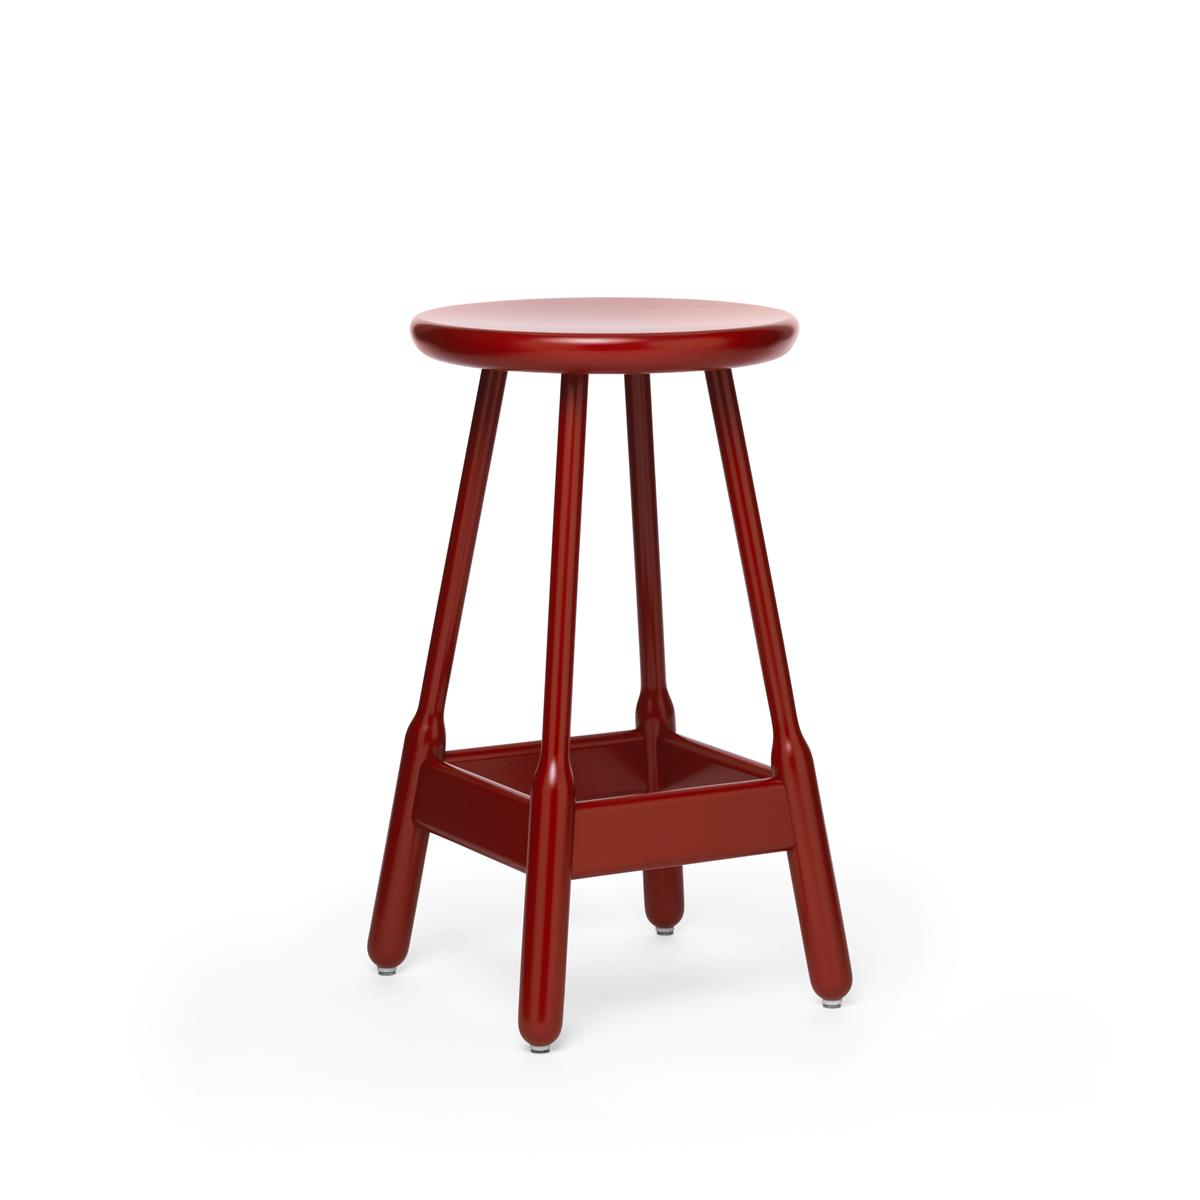 Albert Low Bar Stool - Red Lacquered